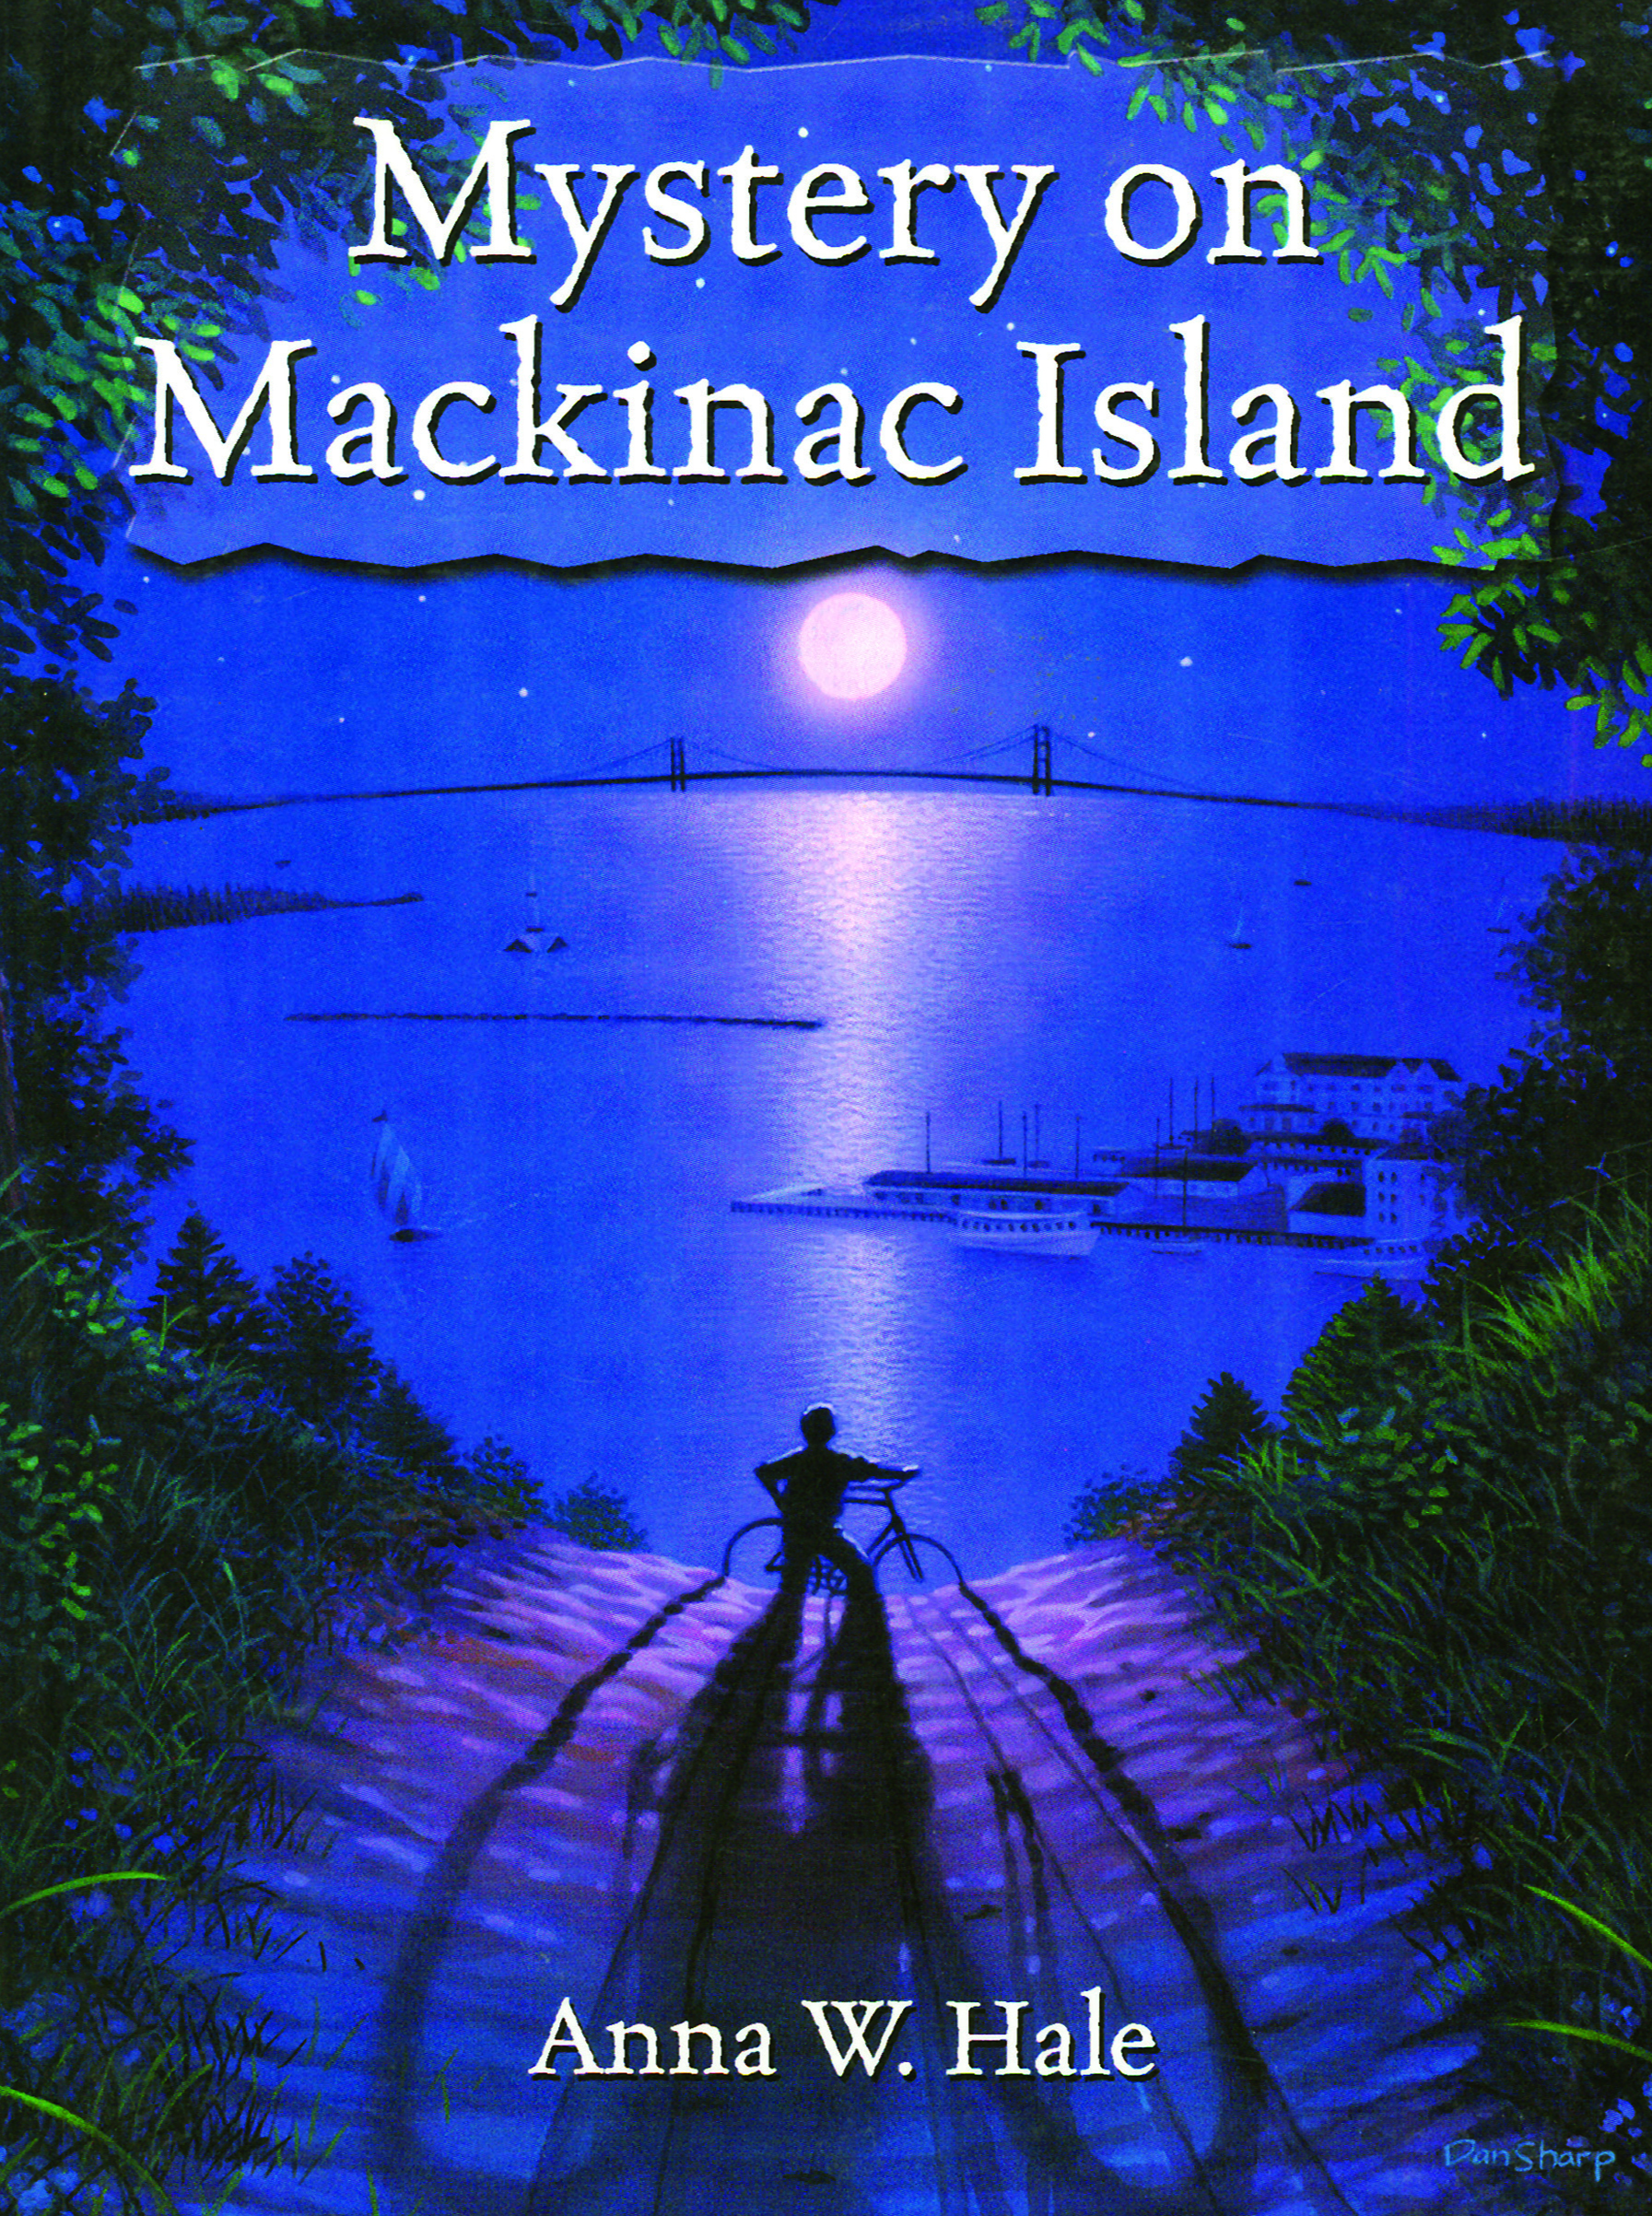 Mystery on Mackinac Island